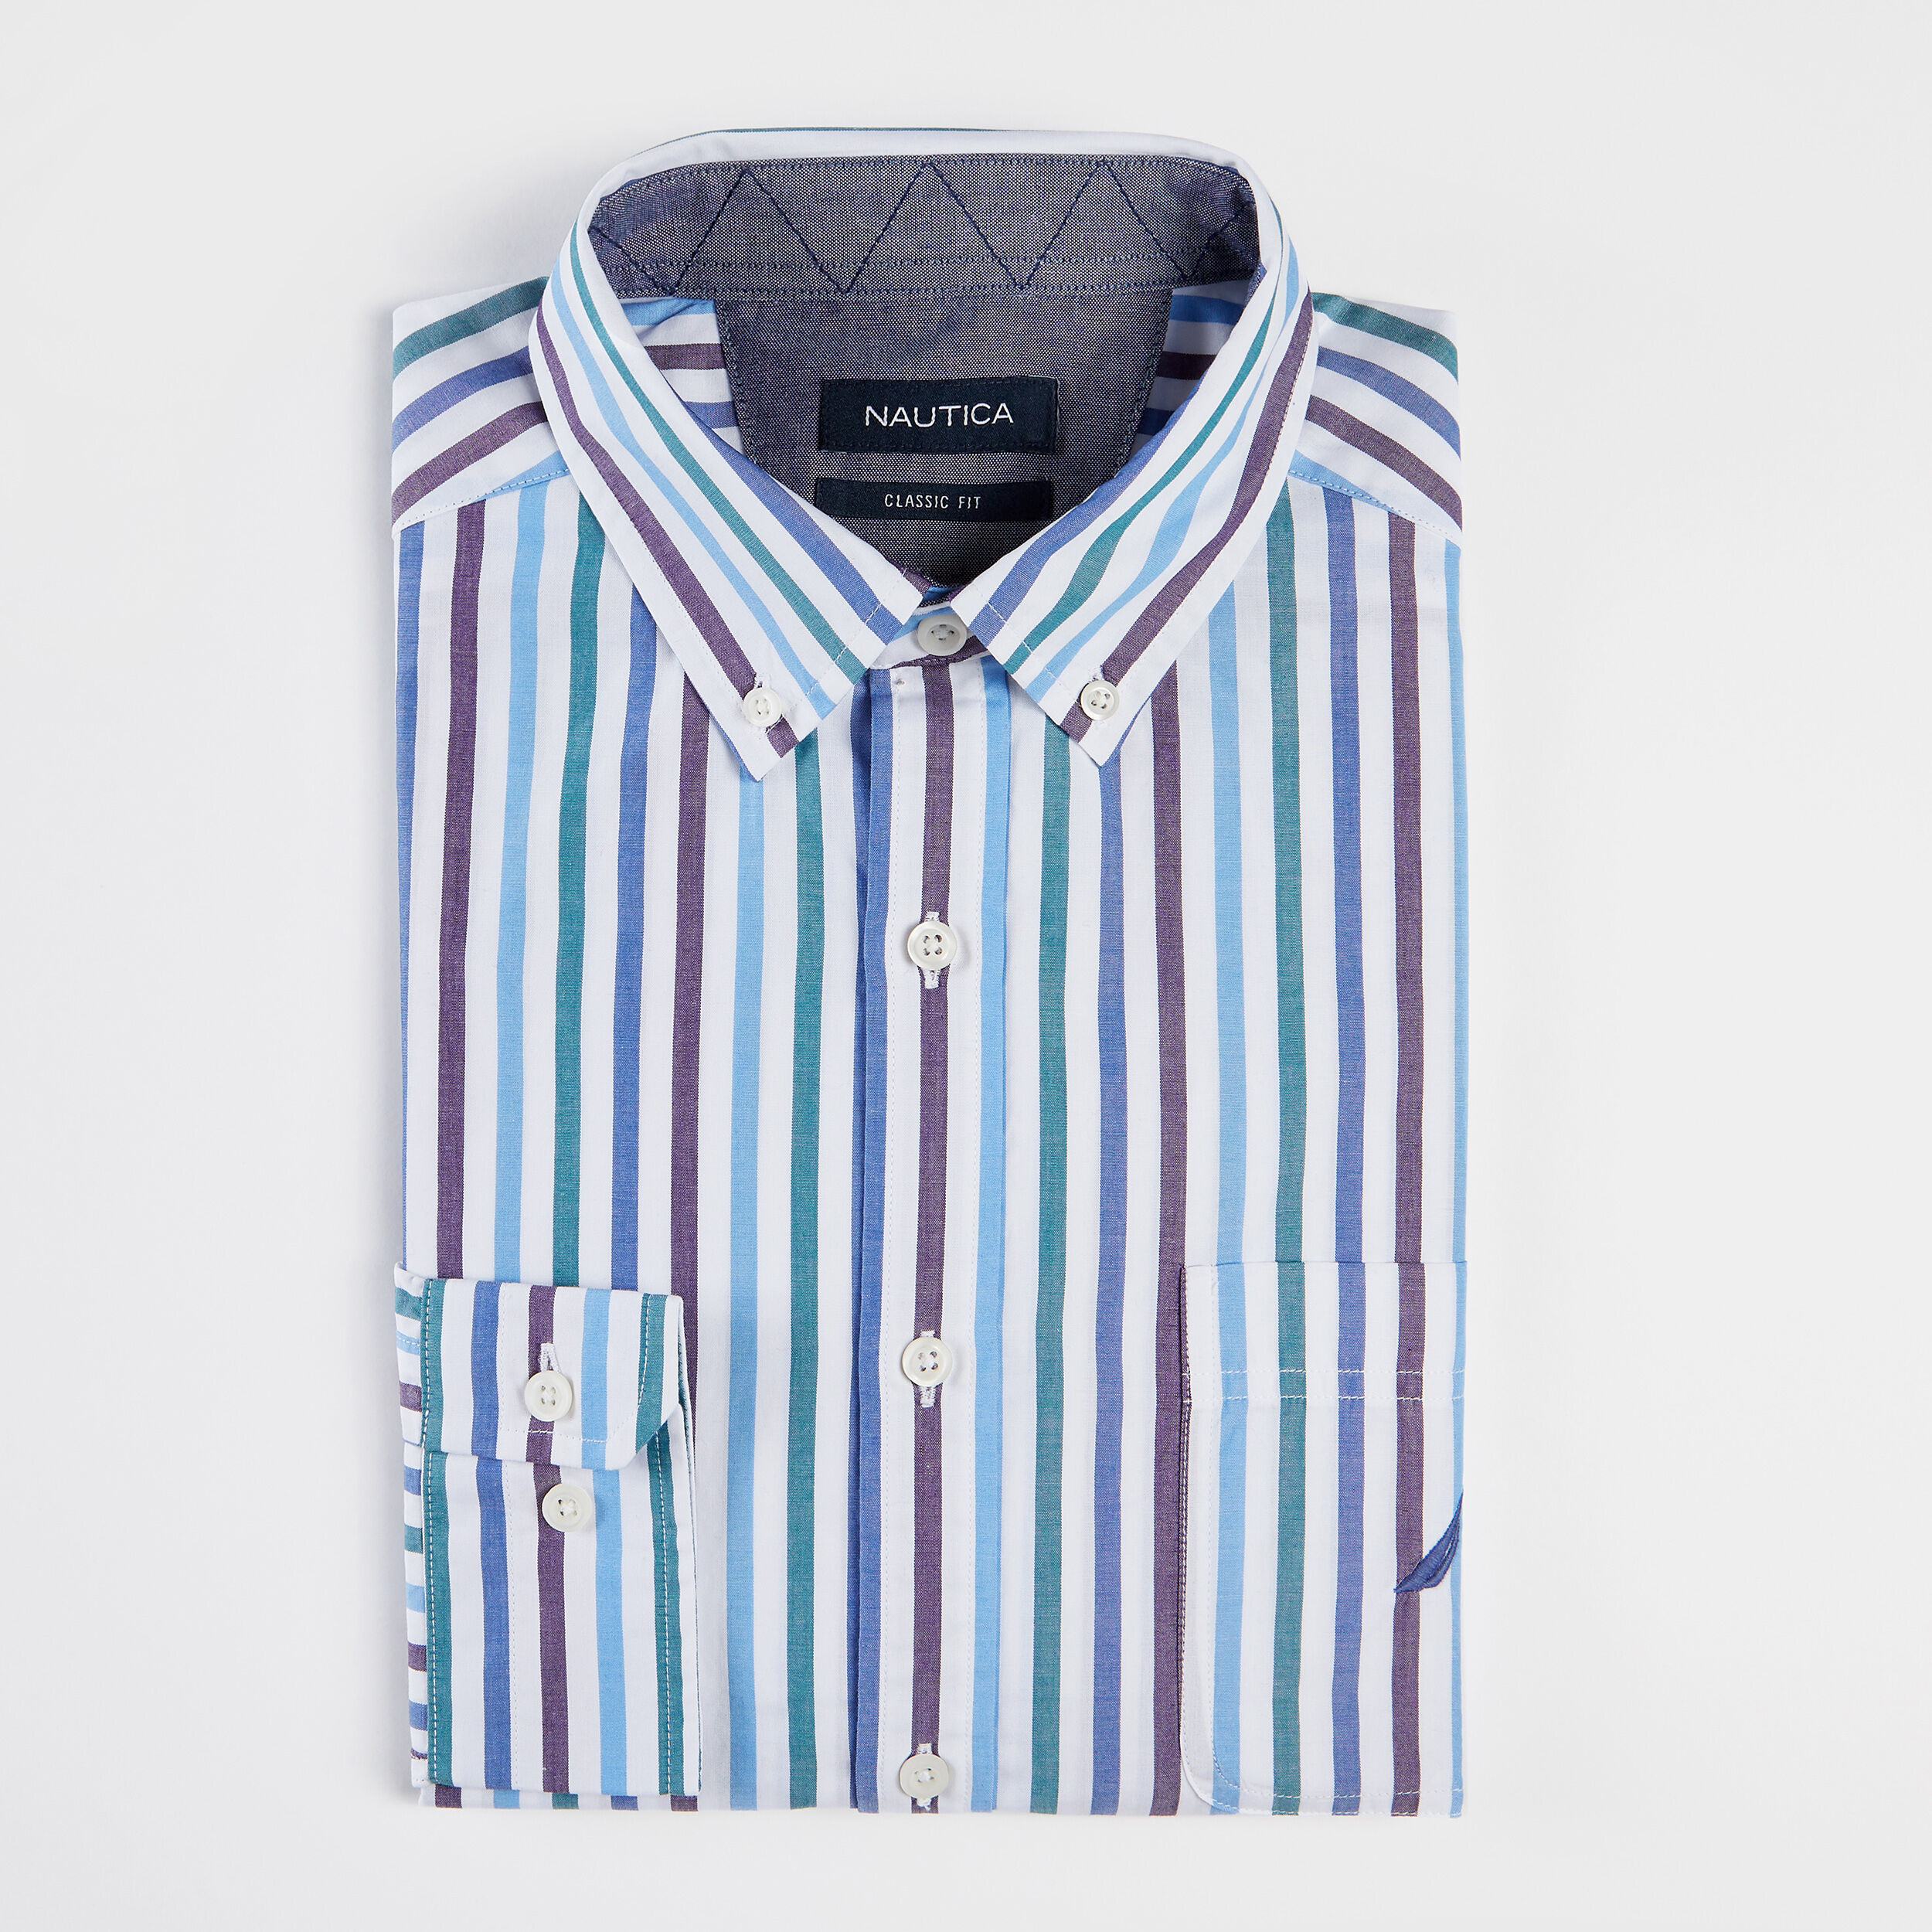 Nautica Men/'s Big and Tall Classic Fit Long Sleeve Multicolor Button Down Shirt